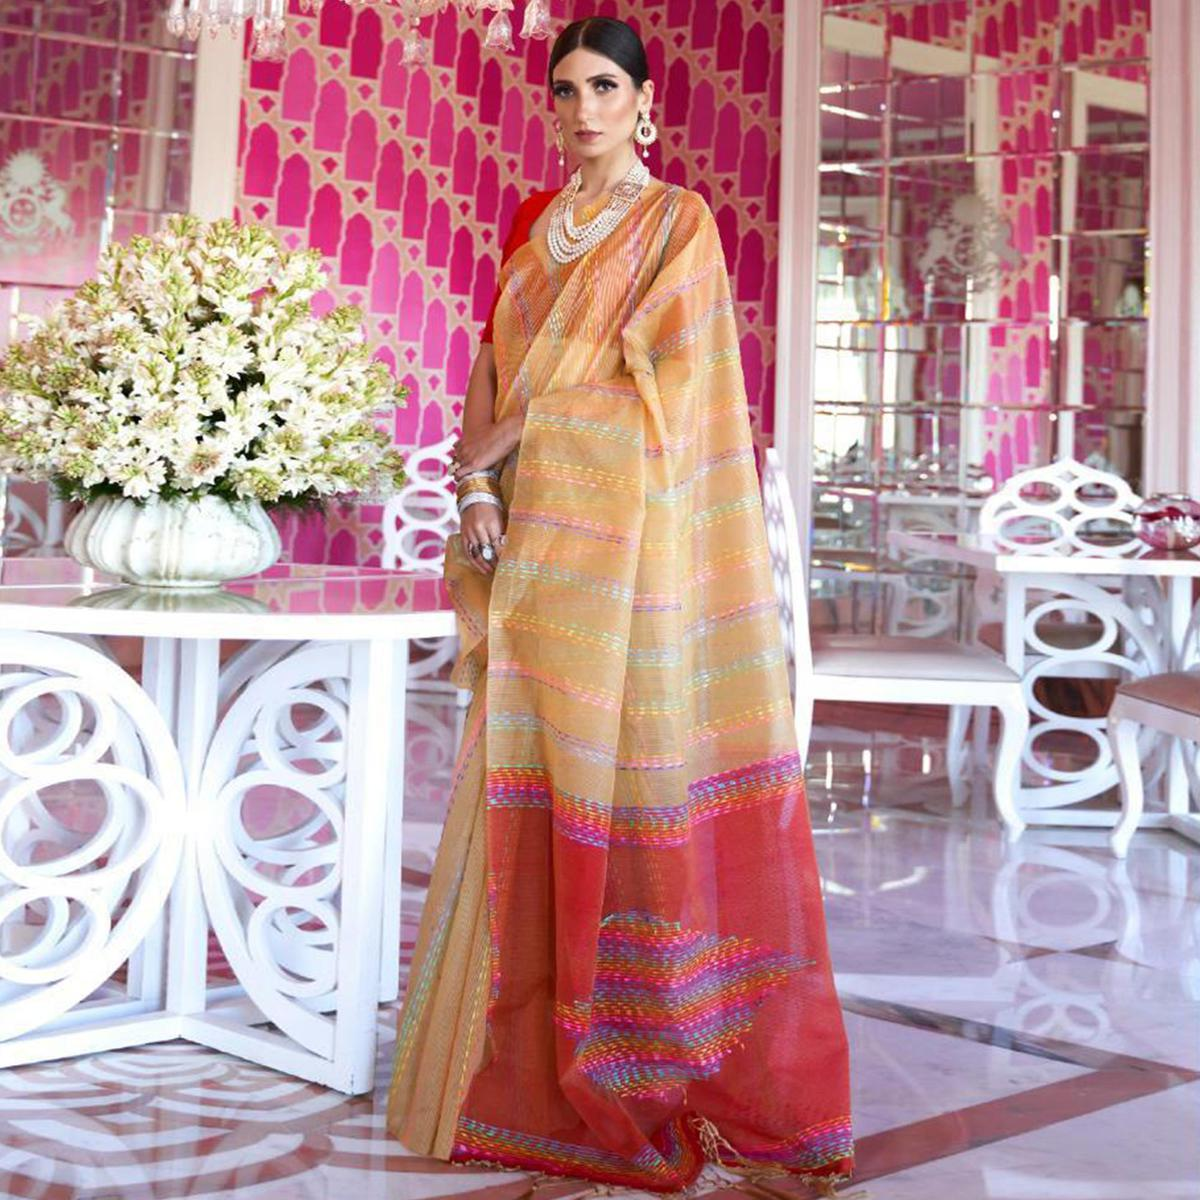 Engrossing Beige Colored Party Wear Embroidered Silk Saree With Tassels